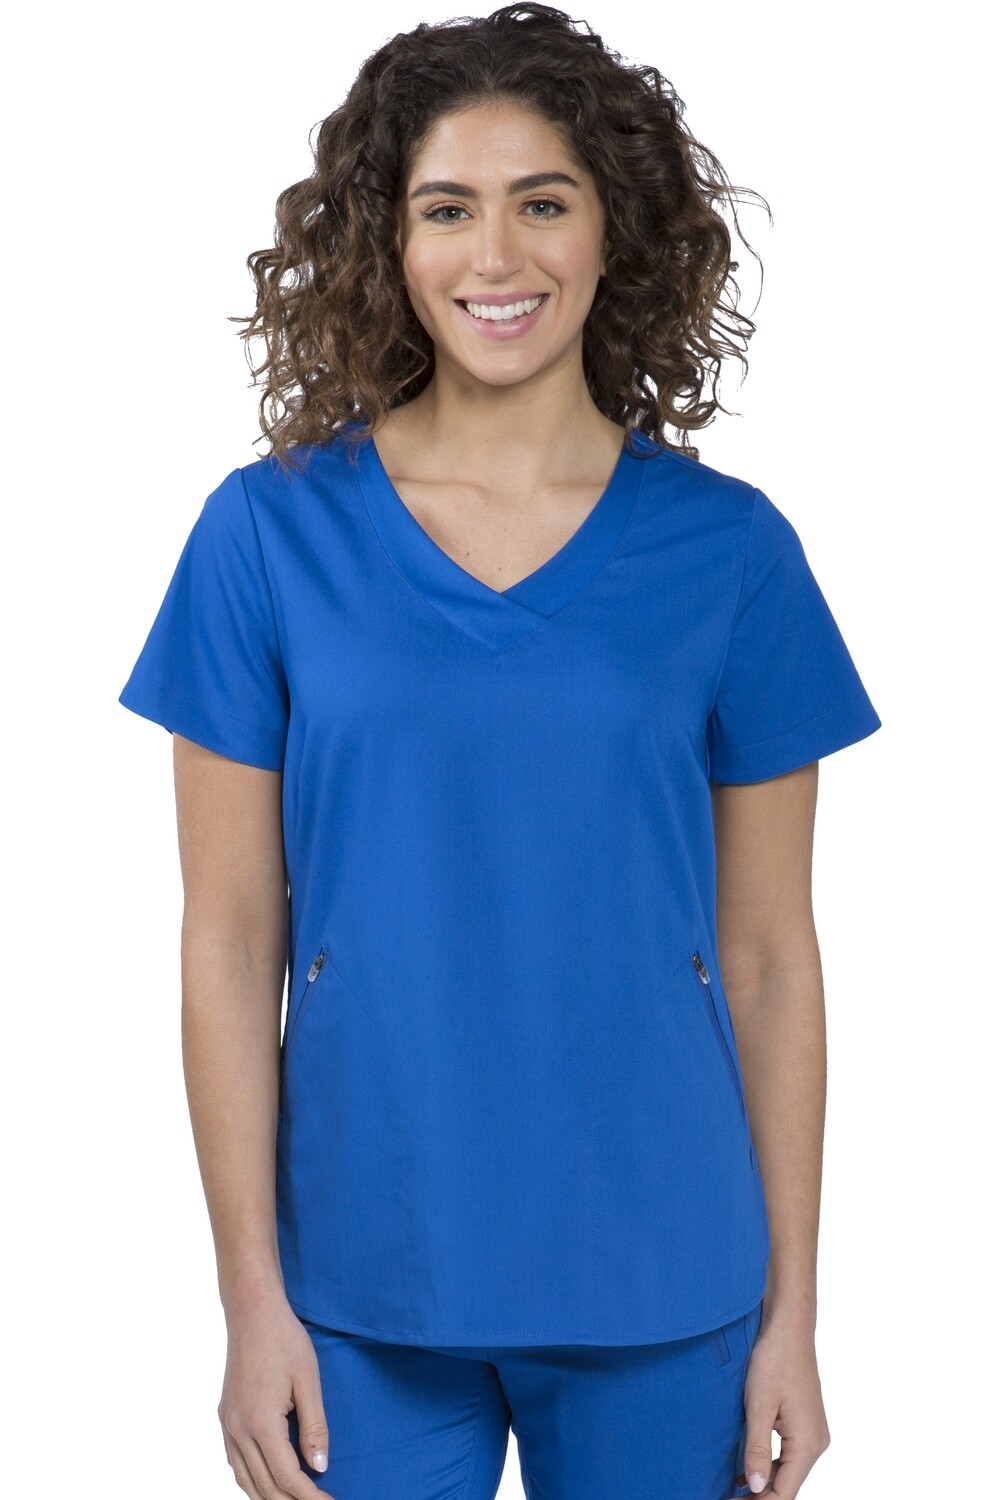 2335 JODI TOP ROYAL 3XL